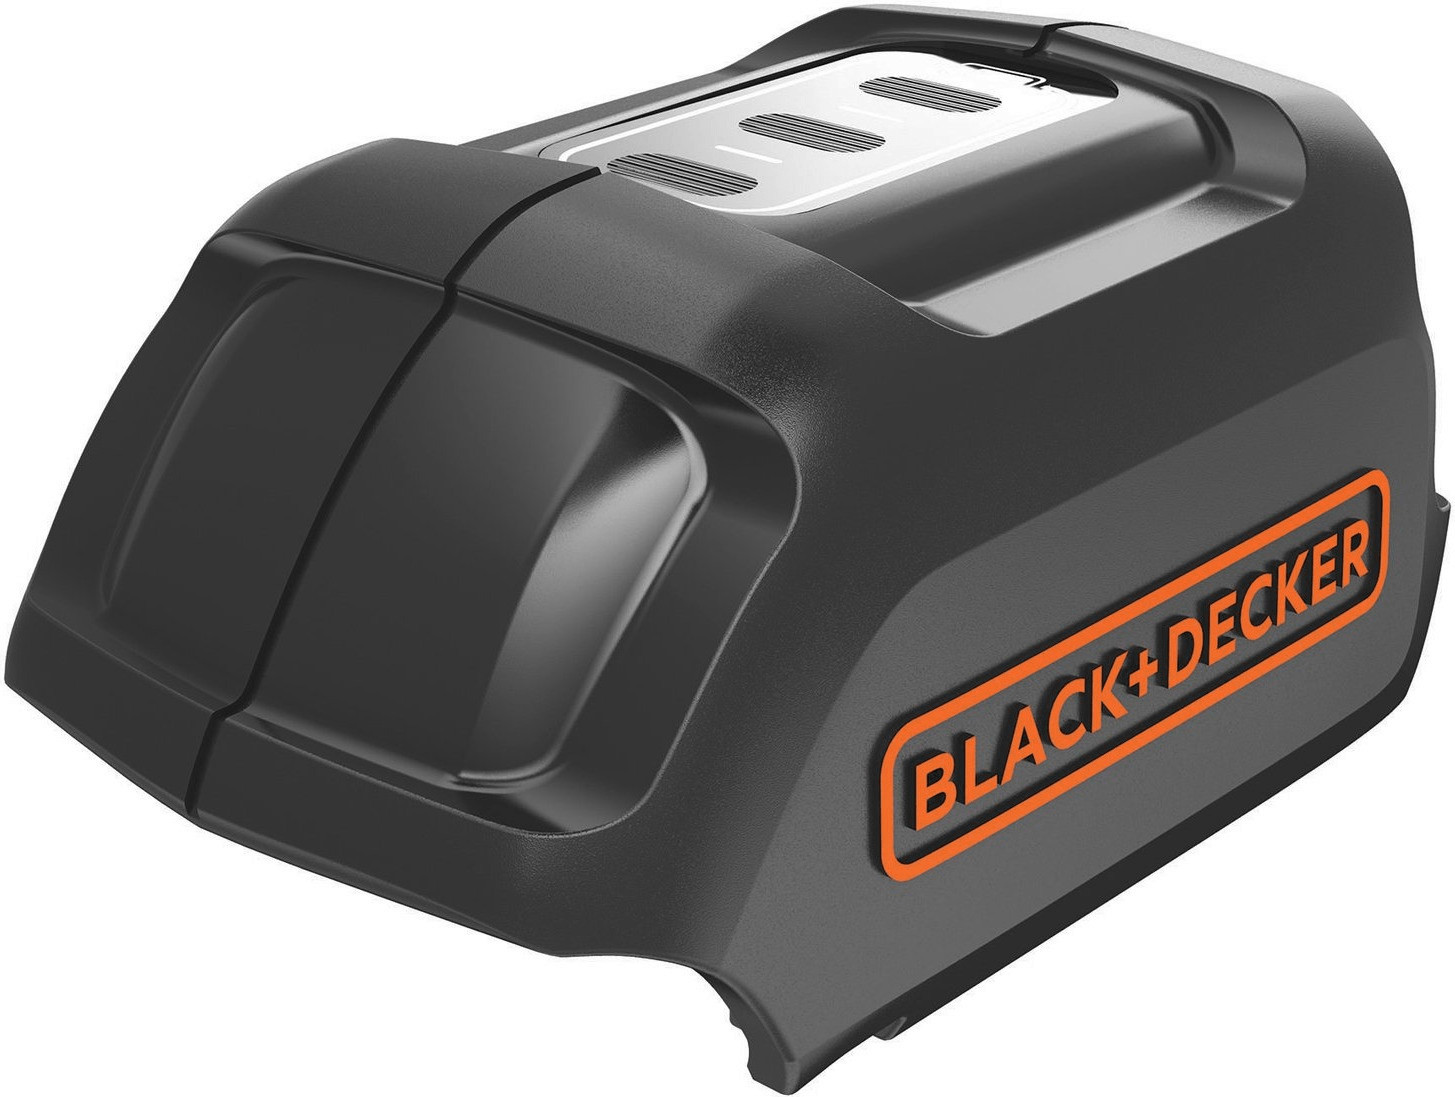 Image of Black and Decker BDCU15AN